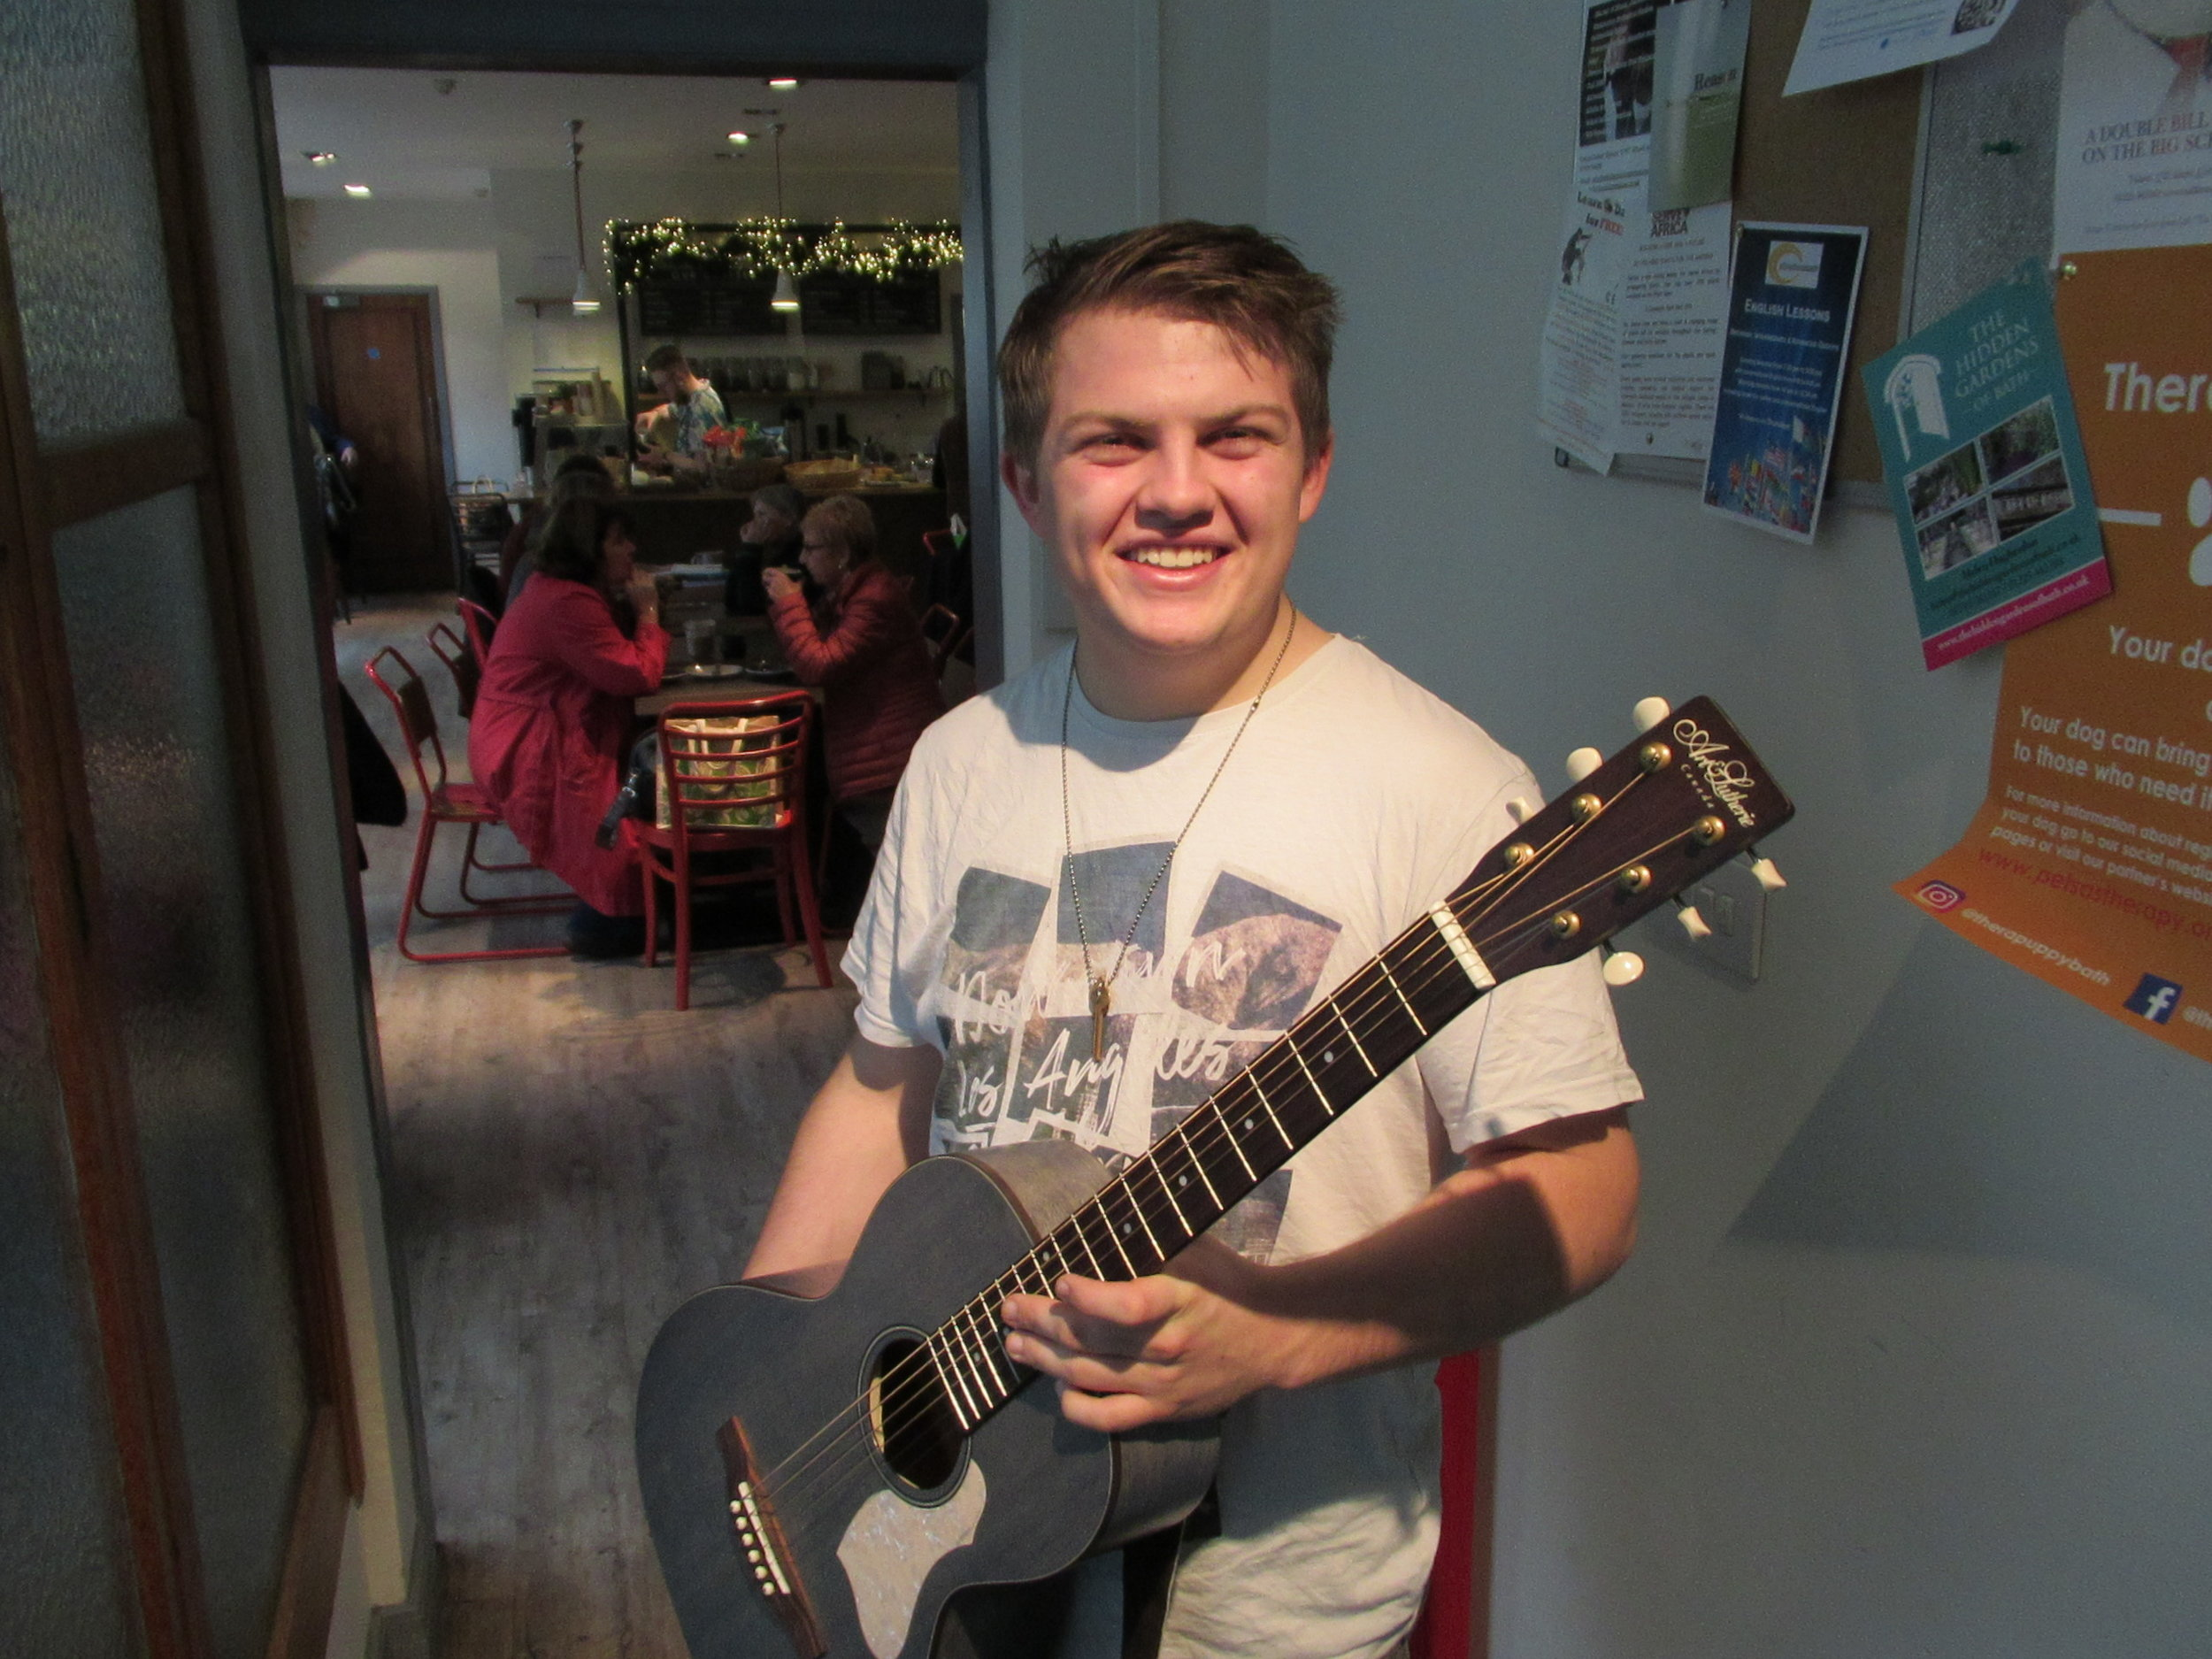 Bath Spa student Ed Axtell with the guitar provided by the William Cross Foundation